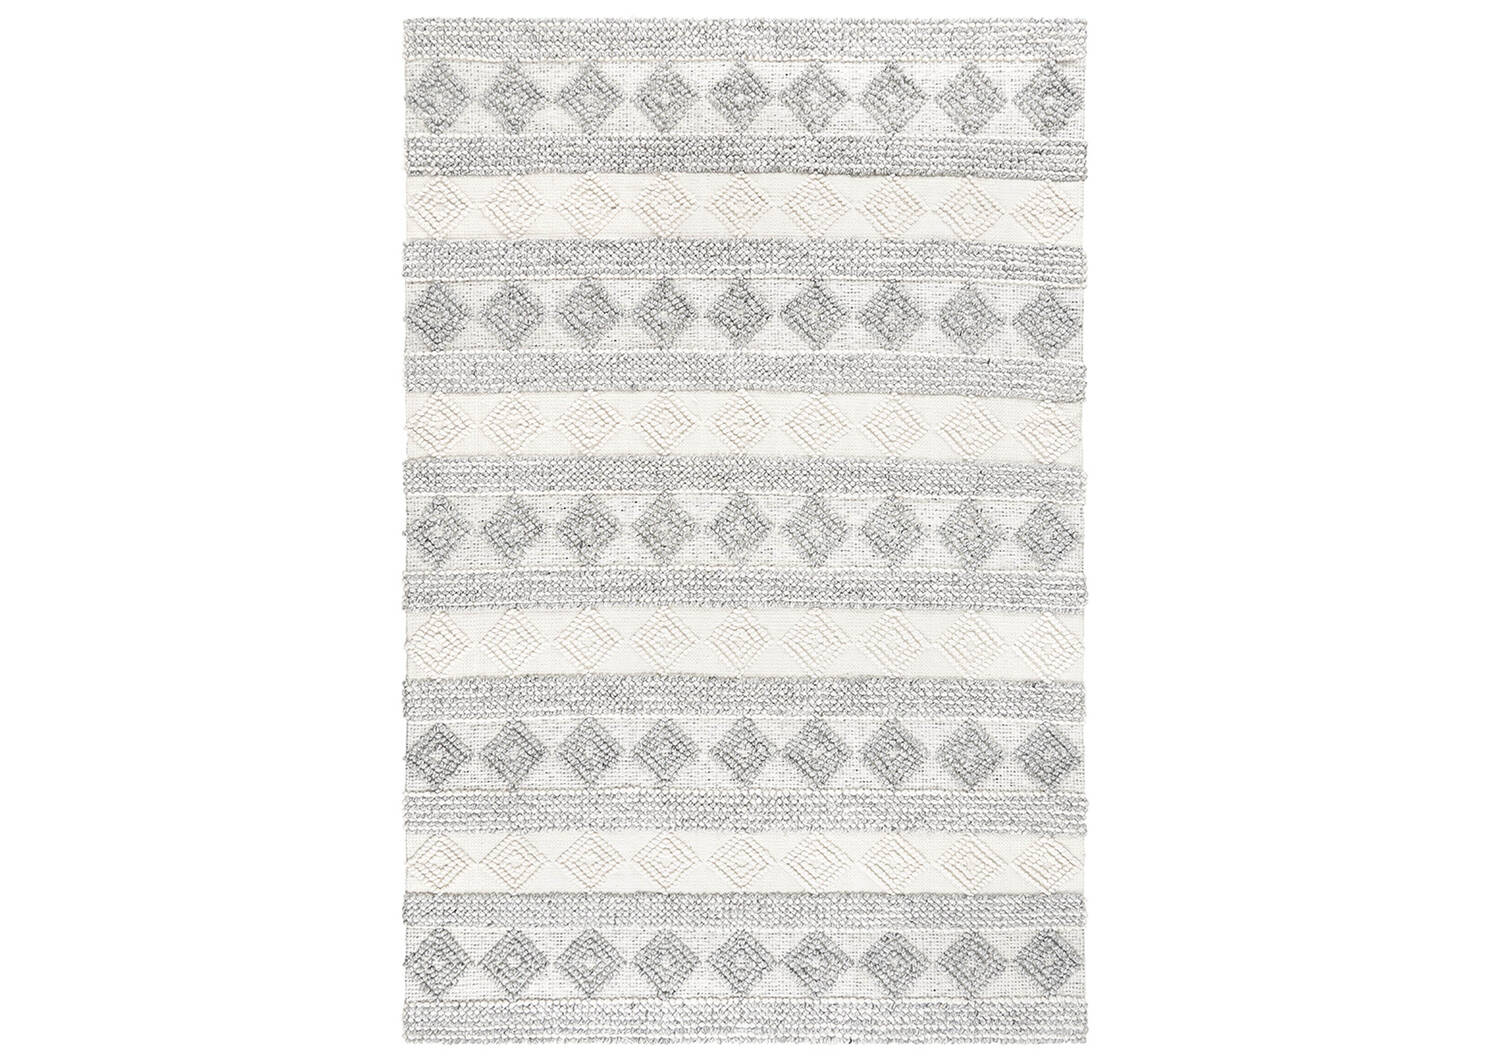 Arkun Rug 96x120 White/Grey